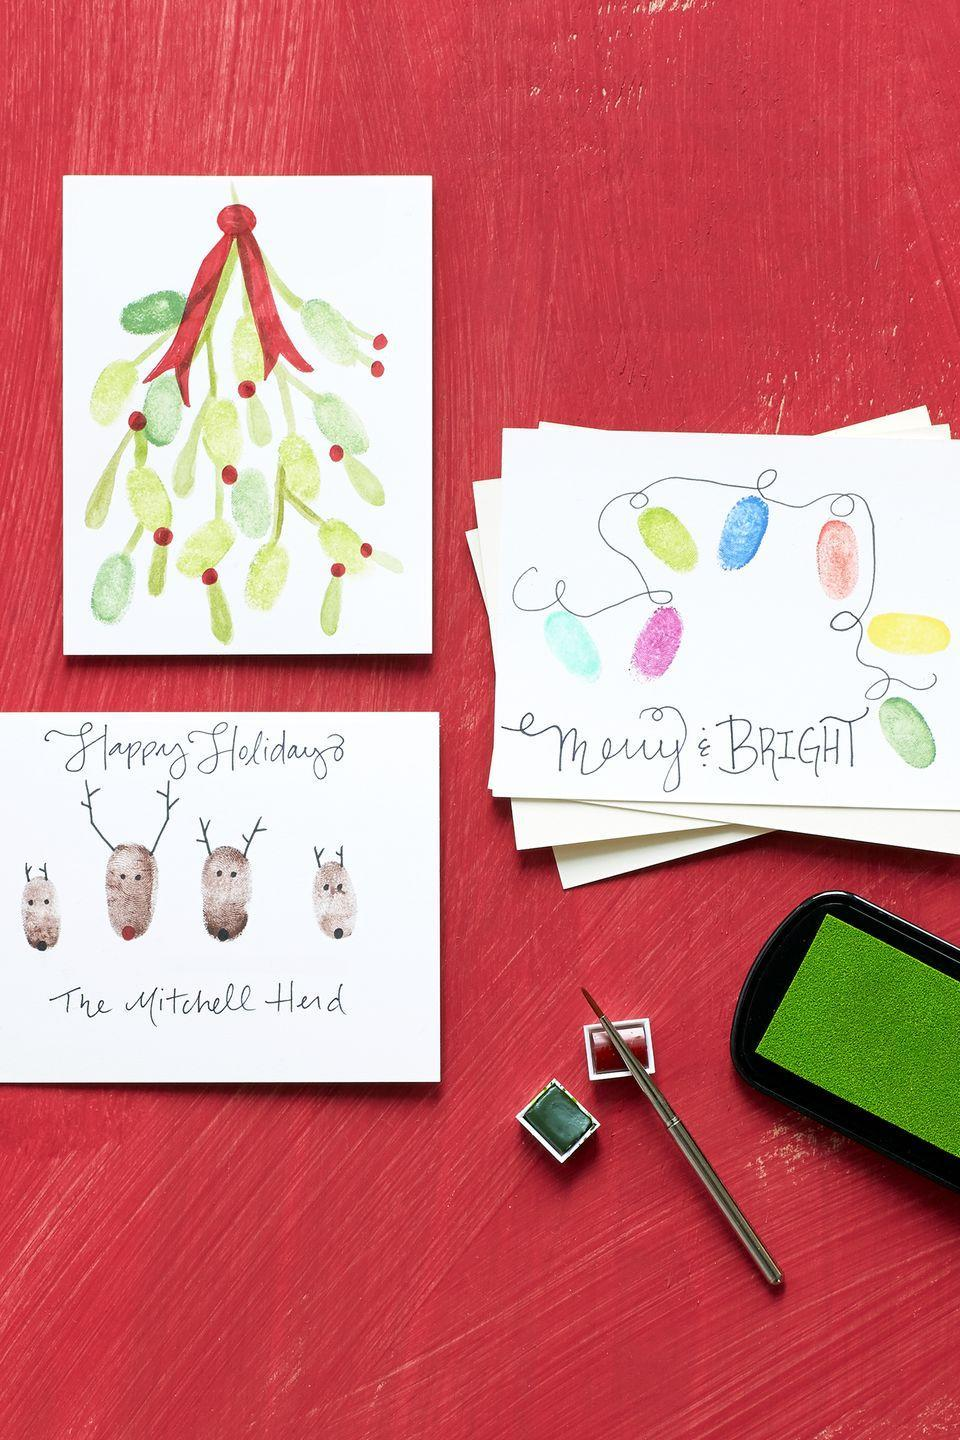 """<p>Even the """"all thumbs"""" type can tackle these crafts, which start with plain white notecards.</p><p><strong>Greenery:</strong> Using green ink, stamp thumbs and press onto card to make leaves. Add berries and bow with a red marker and stems with green watercolor paint.</p><p><strong>String Lights:</strong> Stamp thumbs in various link shades. Use a black fine-tip marker to draw a string connecting the lights.</p><p><strong>Reindeer Herd:</strong> Stamp thumbs in brown ink and press onto blank card. Use fine-tip markers to draw antlers, eyes, and noses.</p><p><a class=""""link rapid-noclick-resp"""" href=""""https://www.amazon.com/Lsushine-Craft-Stamps-Partner-Fabric/dp/B01CKXUCNE/?tag=syn-yahoo-20&ascsubtag=%5Bartid%7C10050.g.3872%5Bsrc%7Cyahoo-us"""" rel=""""nofollow noopener"""" target=""""_blank"""" data-ylk=""""slk:SHOP STAMP PADS"""">SHOP STAMP PADS</a><br></p>"""